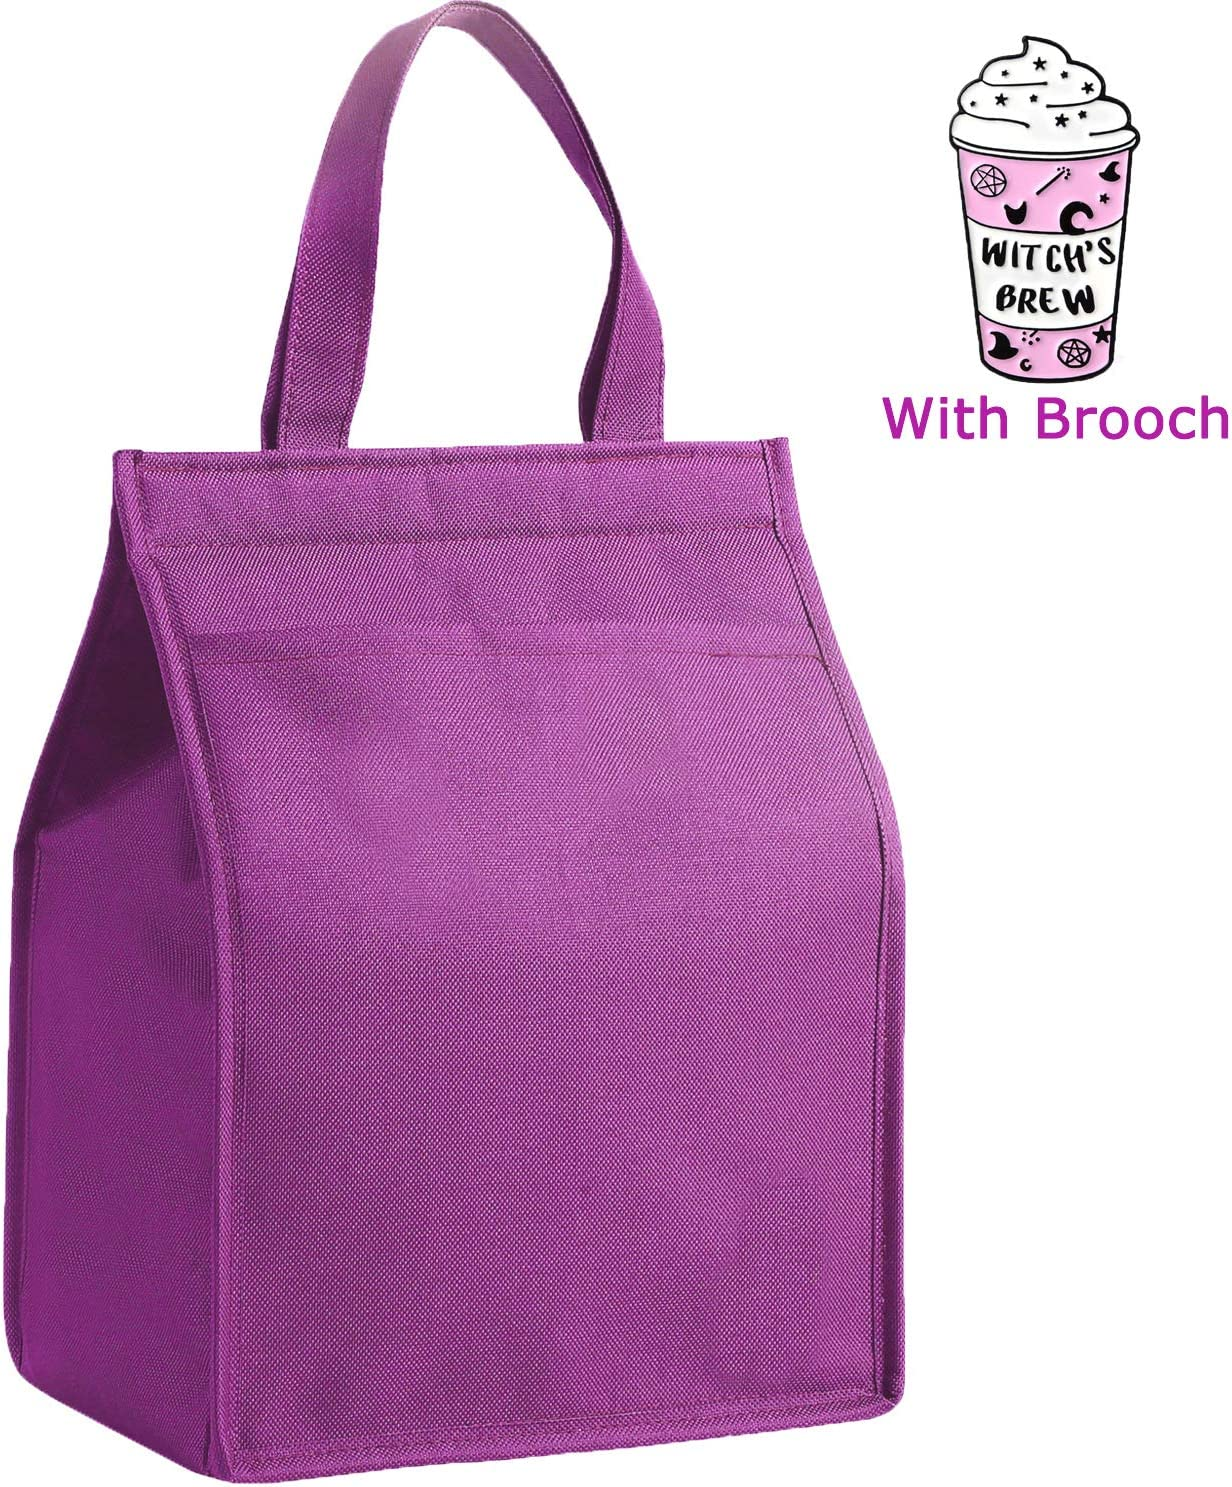 Insulated Lunch Bag Tote Bag Lunch Bento Cooler Bags Keep Freezer Cold with Front Pocket & Stylish Pin Brooch for Women Men